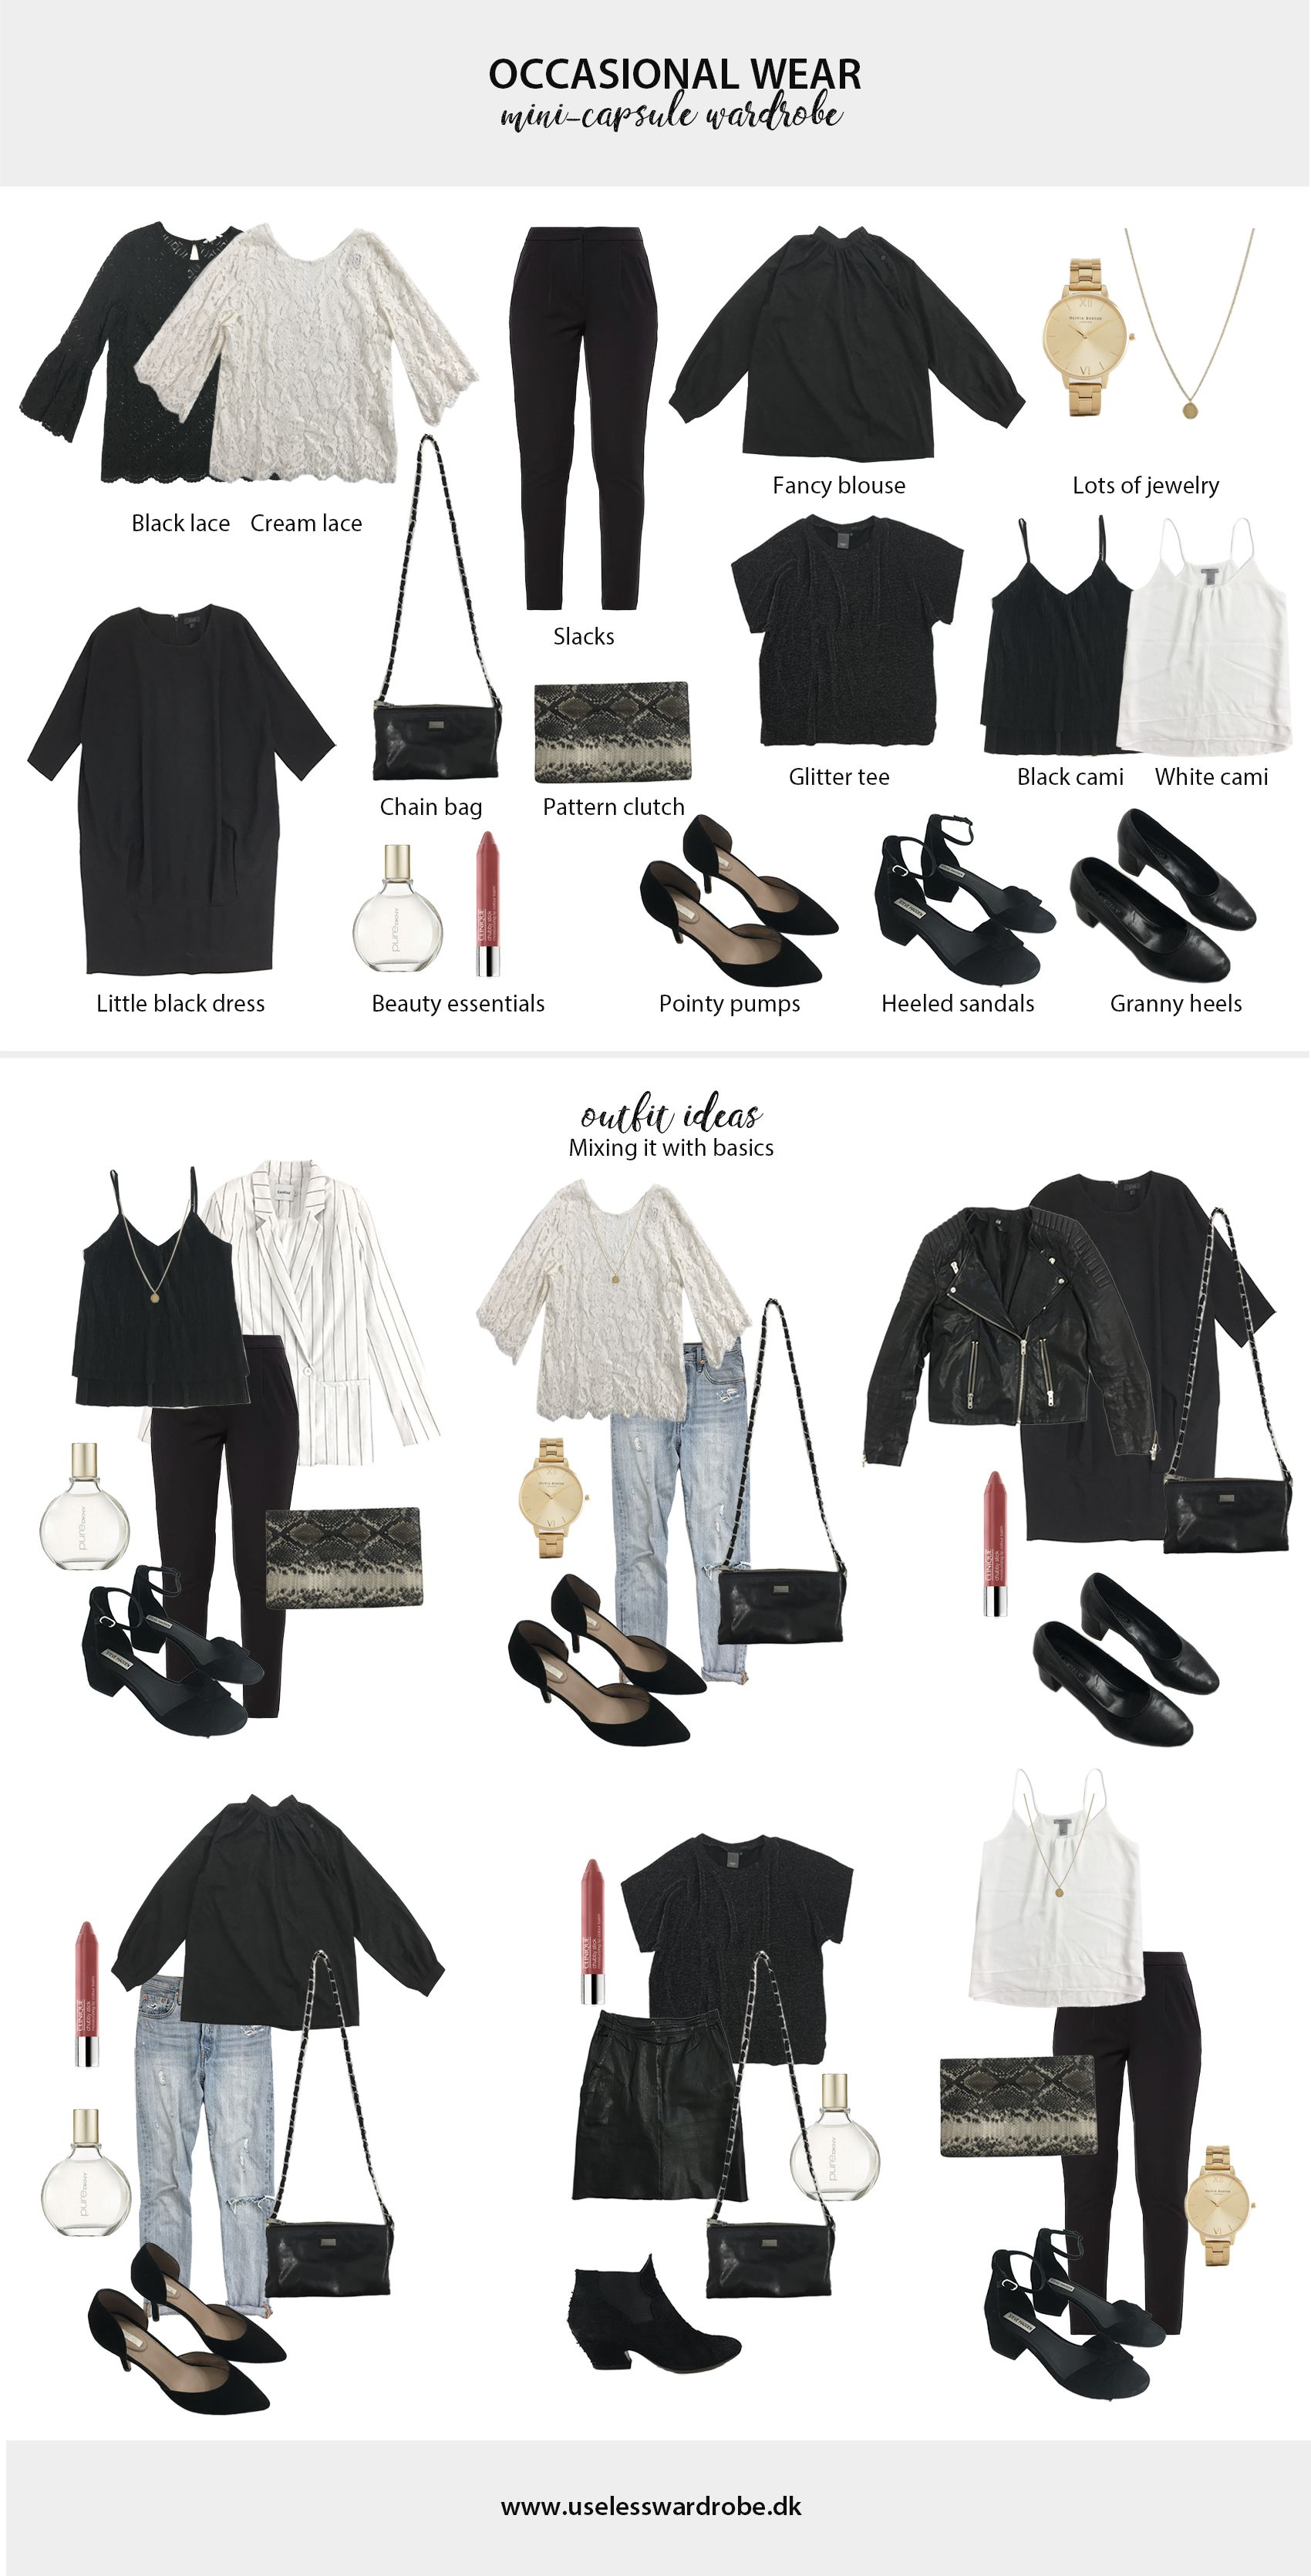 4bea65106e4b Your failsafe guide on how to build a mini-capsule wardrobe of occasional  wear.